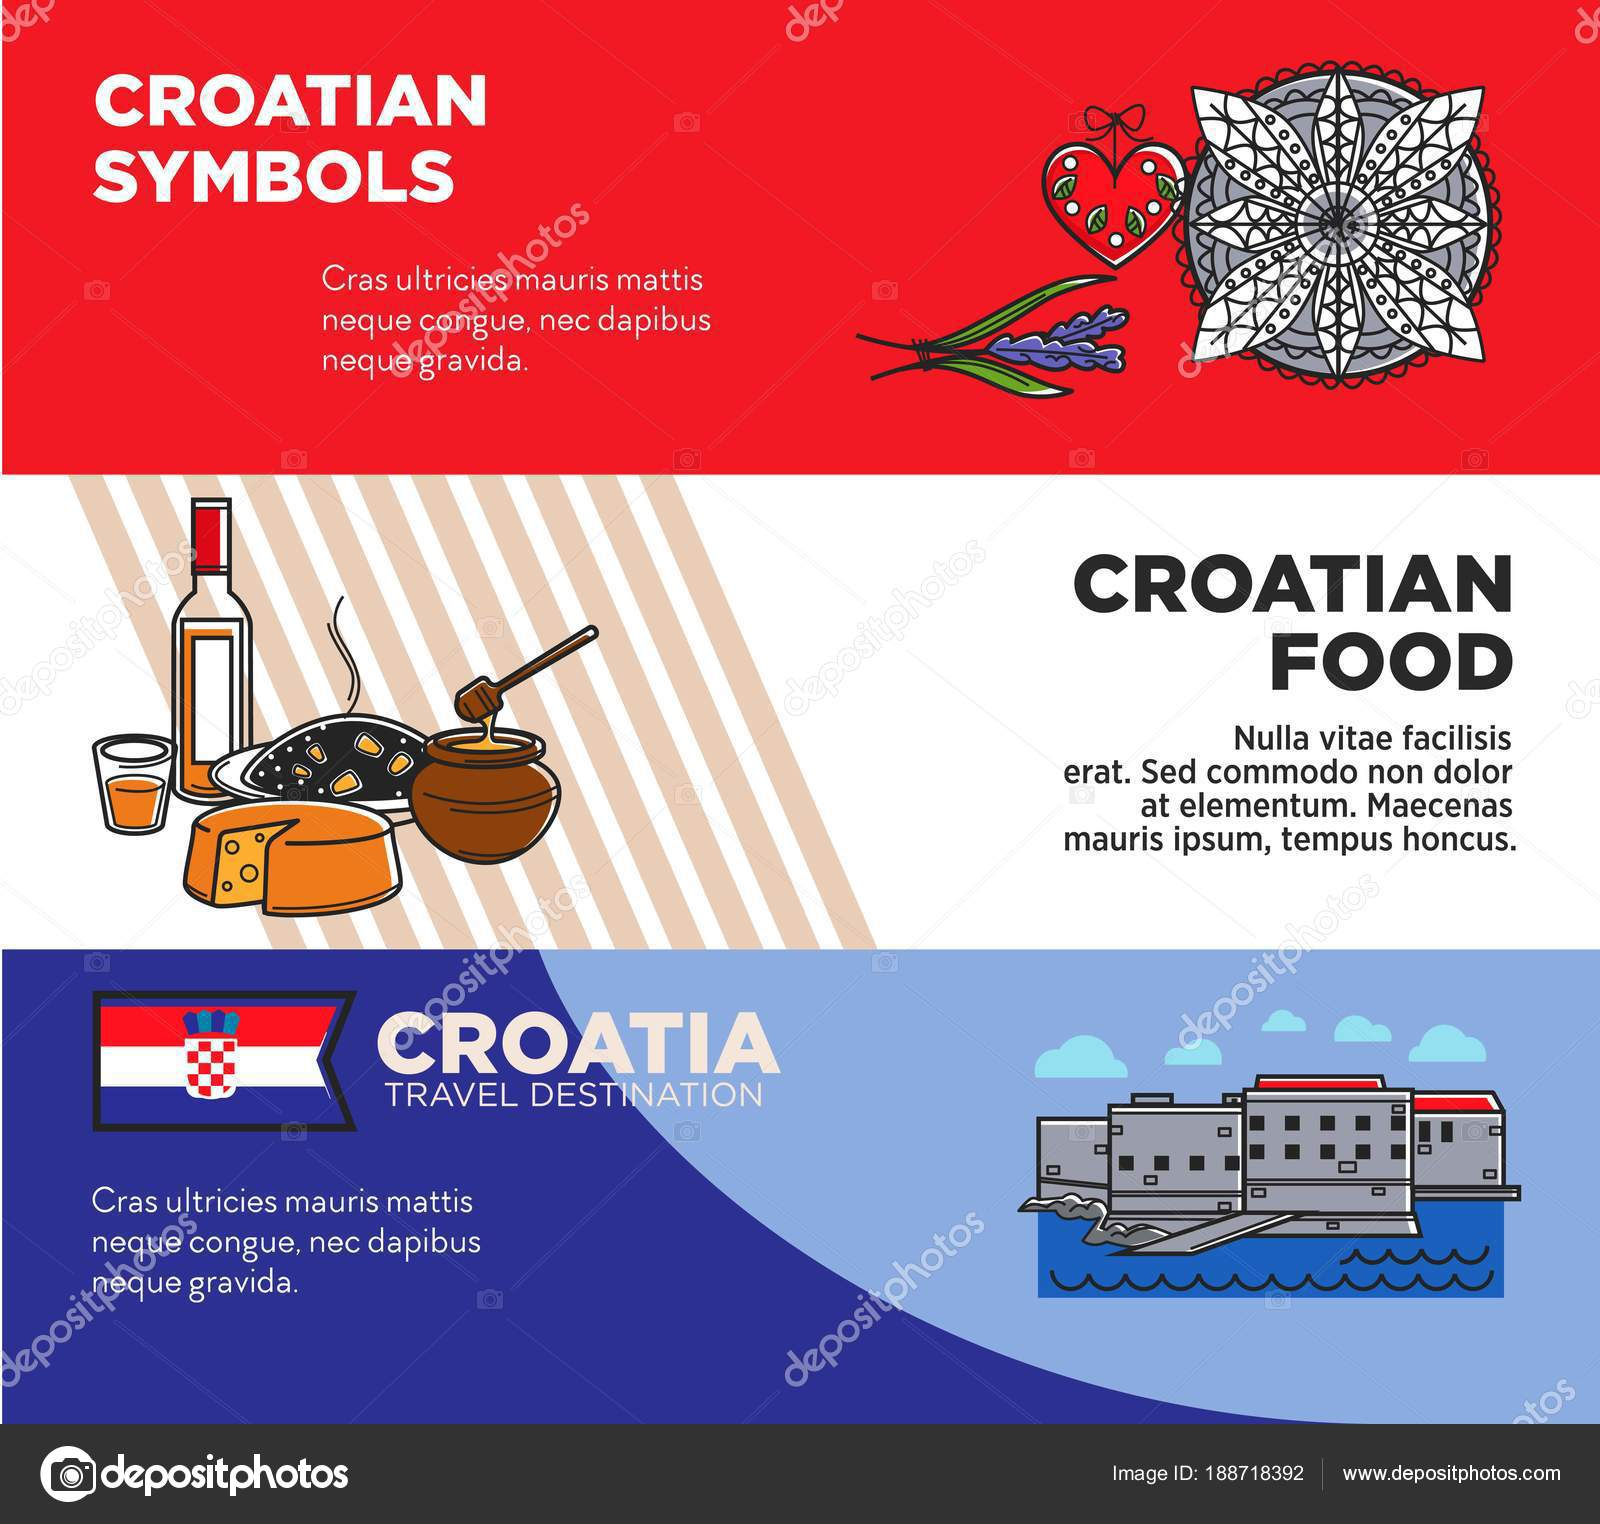 Croatian Symbols And Food Promotional Travel Agency Posters Set Unusual Journey To Authentic Country Advertisement Old Architecture Tasty On